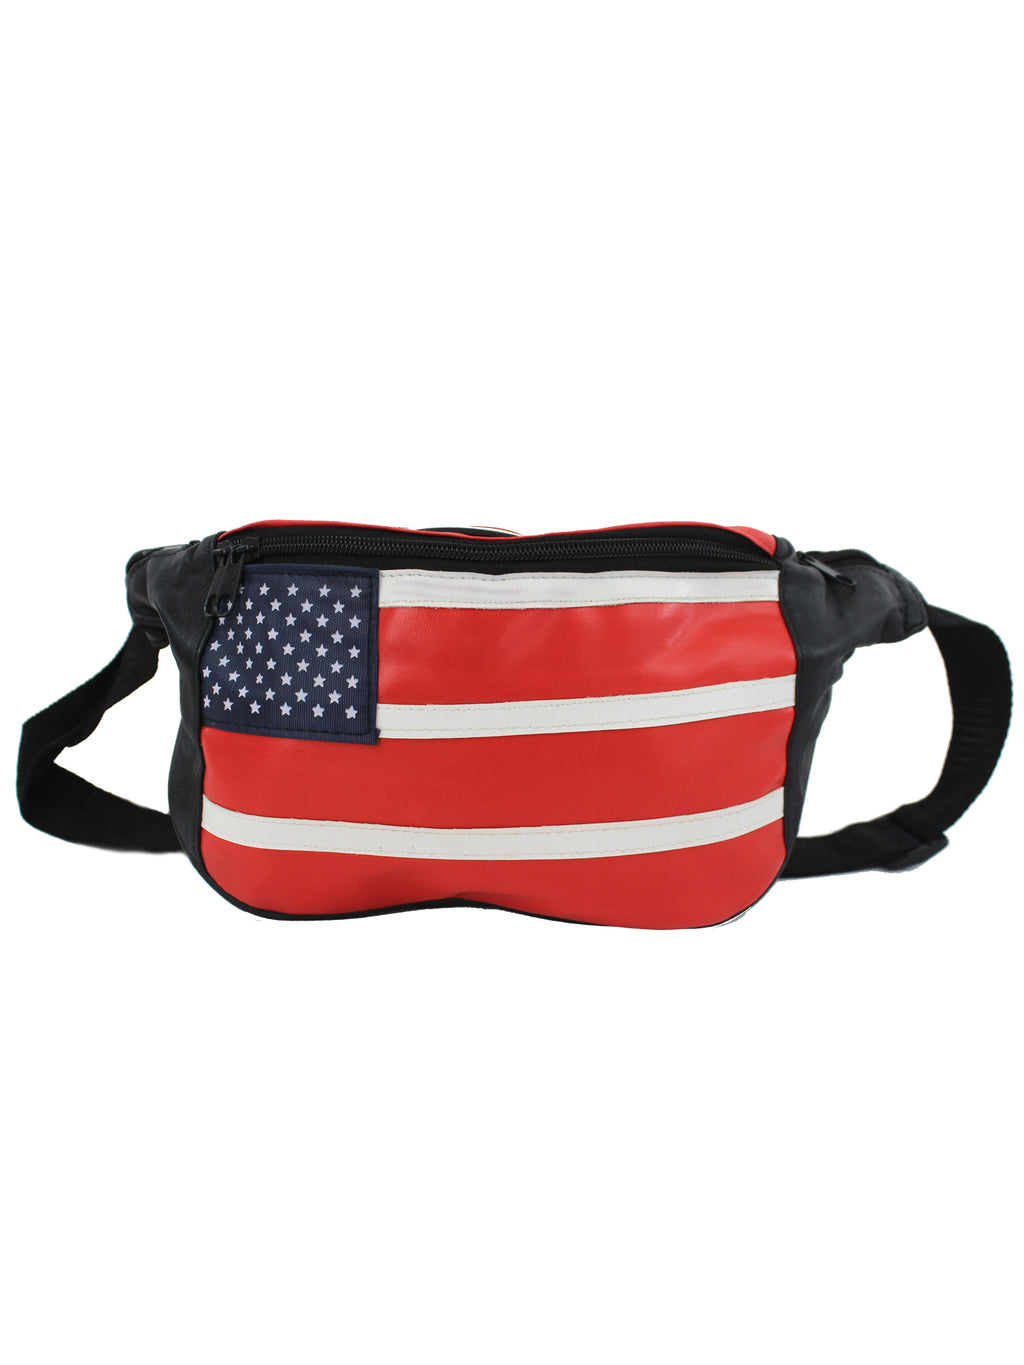 Genuine Leather American Flag Fanny Pack Waist Bag